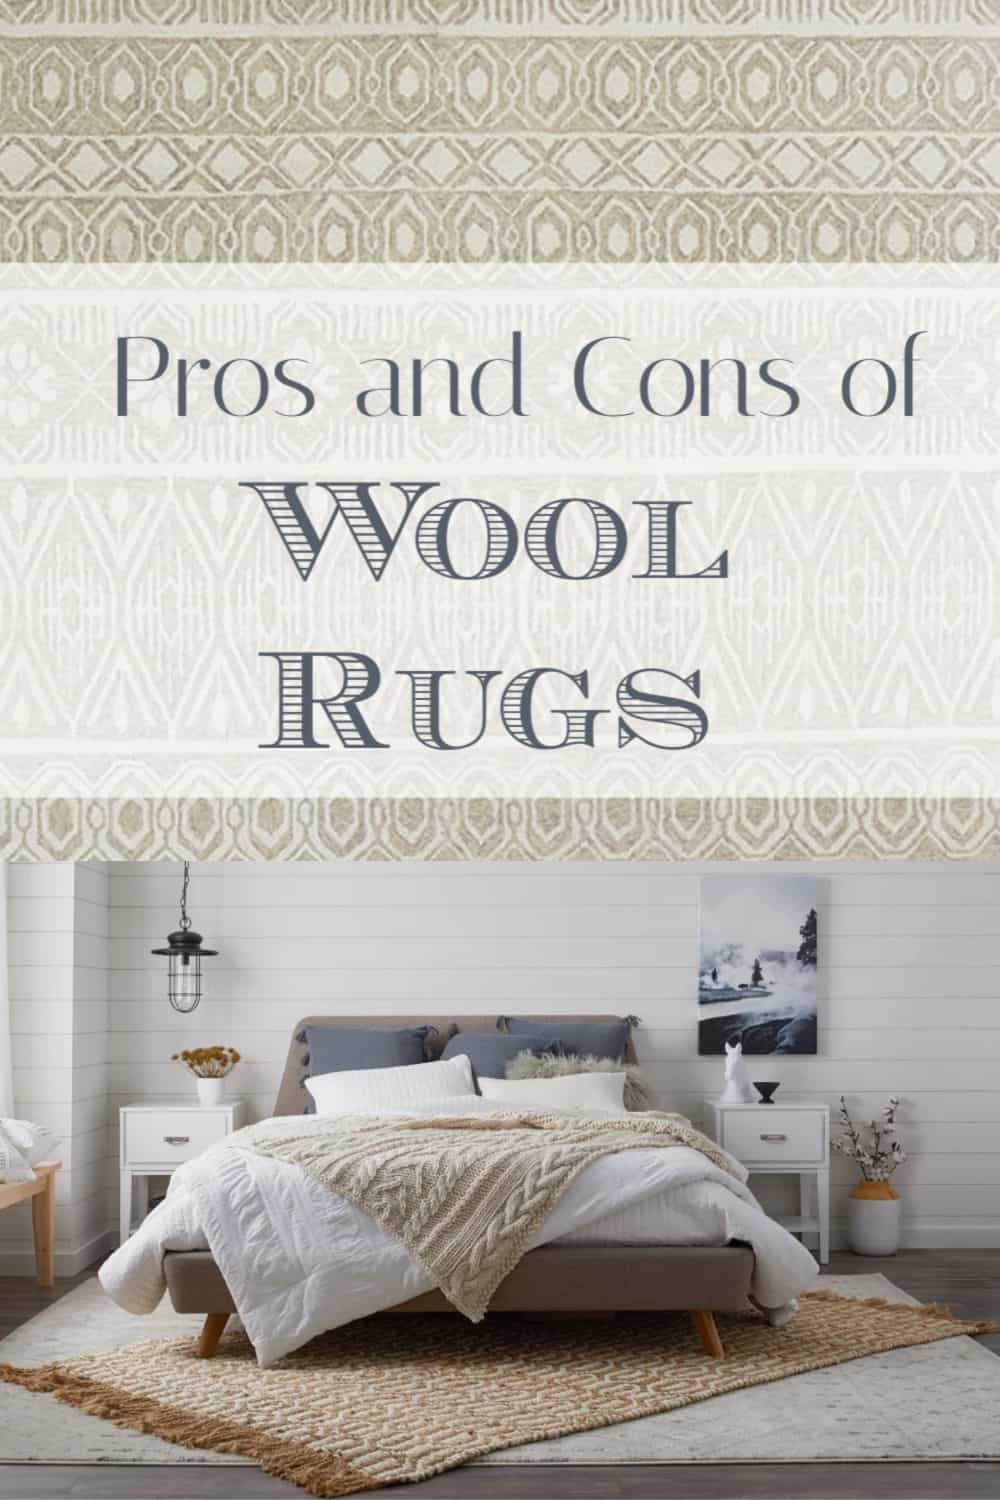 pros and cons of wool rugs